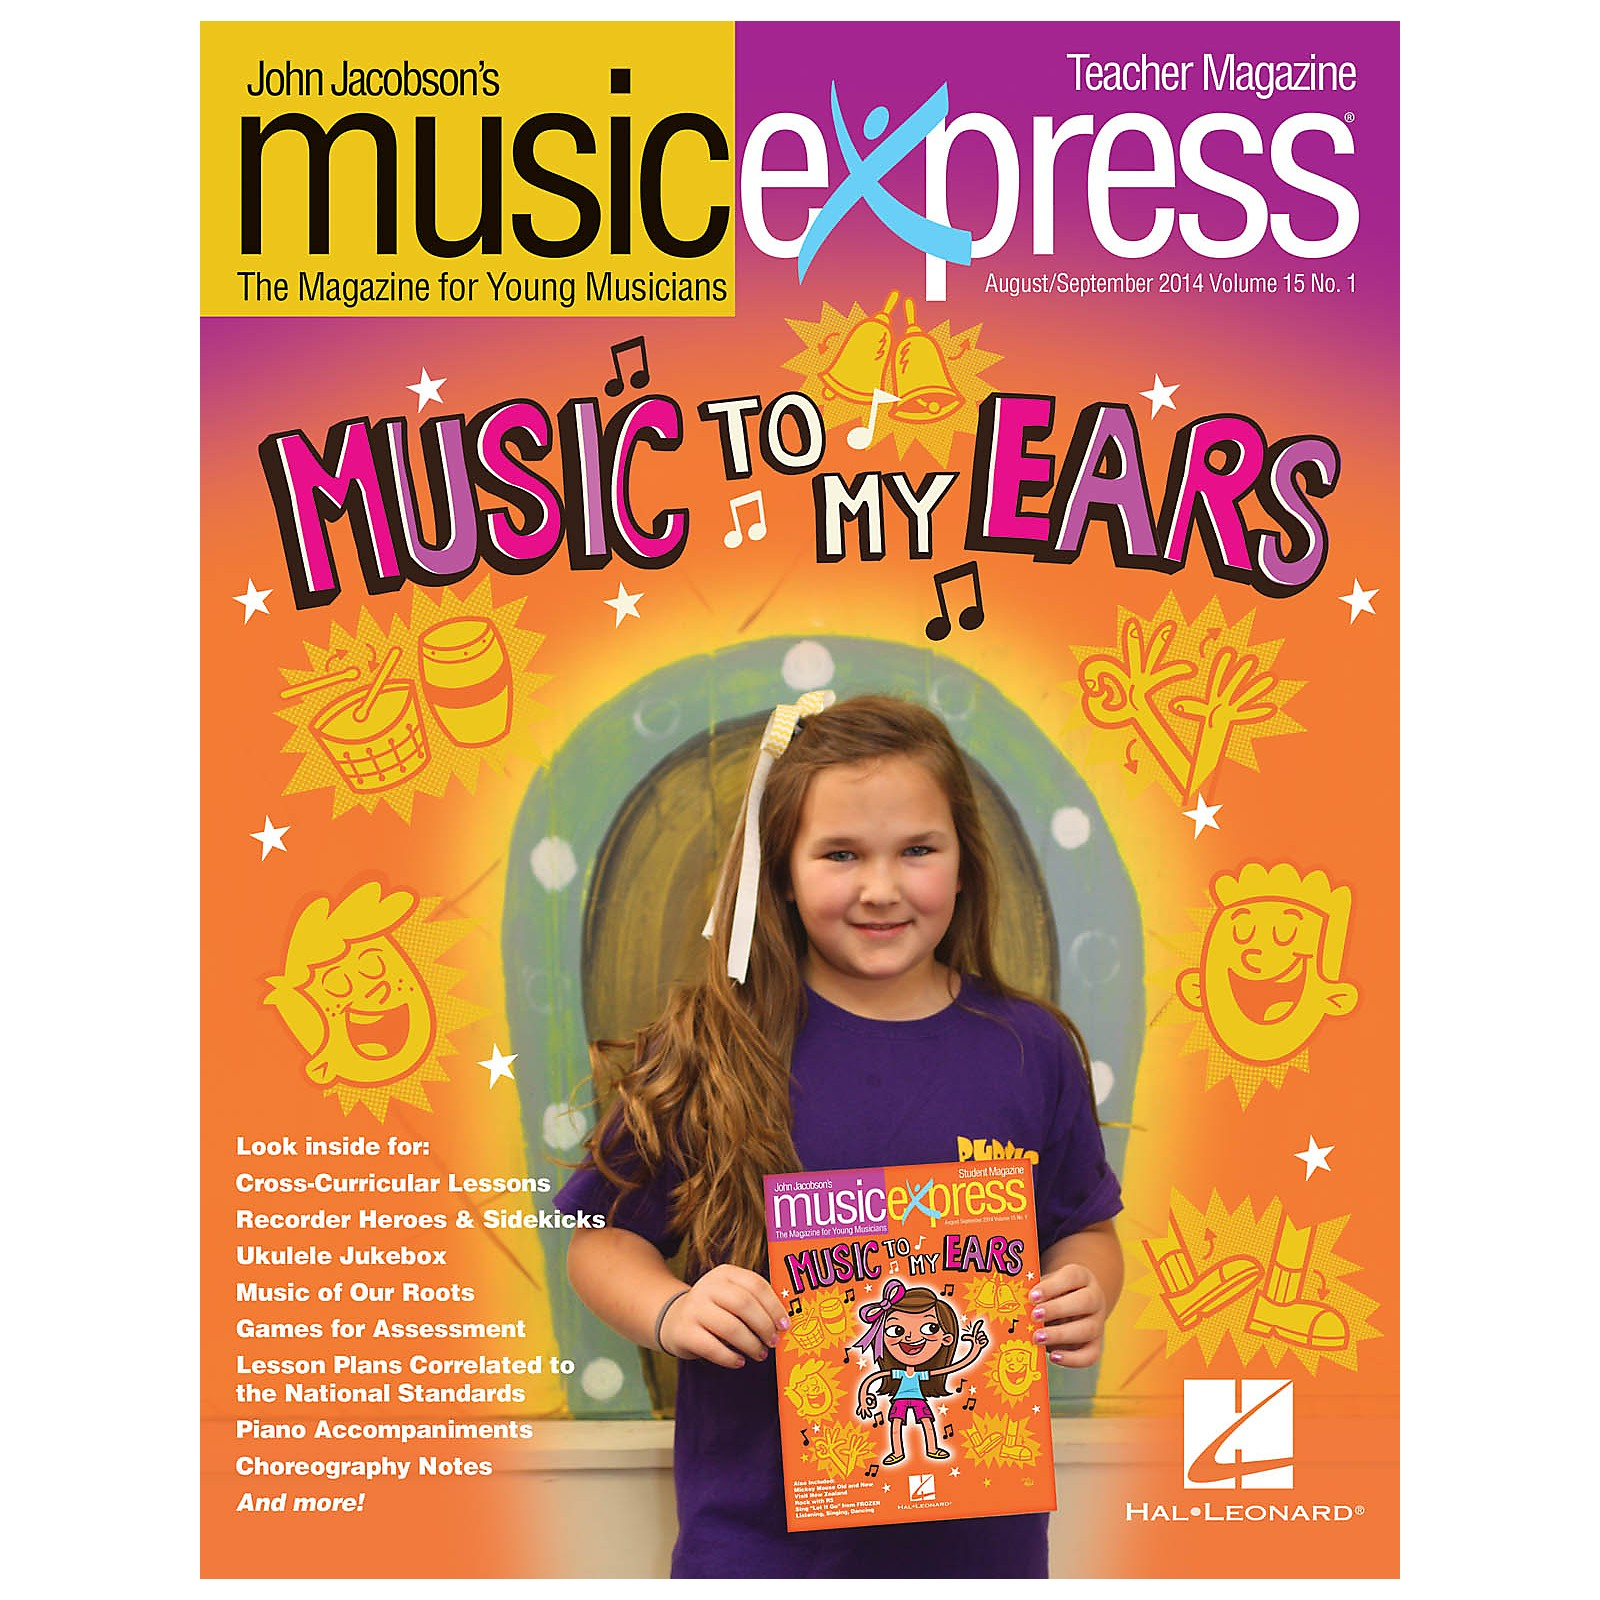 Hal Leonard Music to My Ears Vol. 15 No. 1 (August/September 2014) PREMIUM COMPLETE PAK Composed by John Jacobson